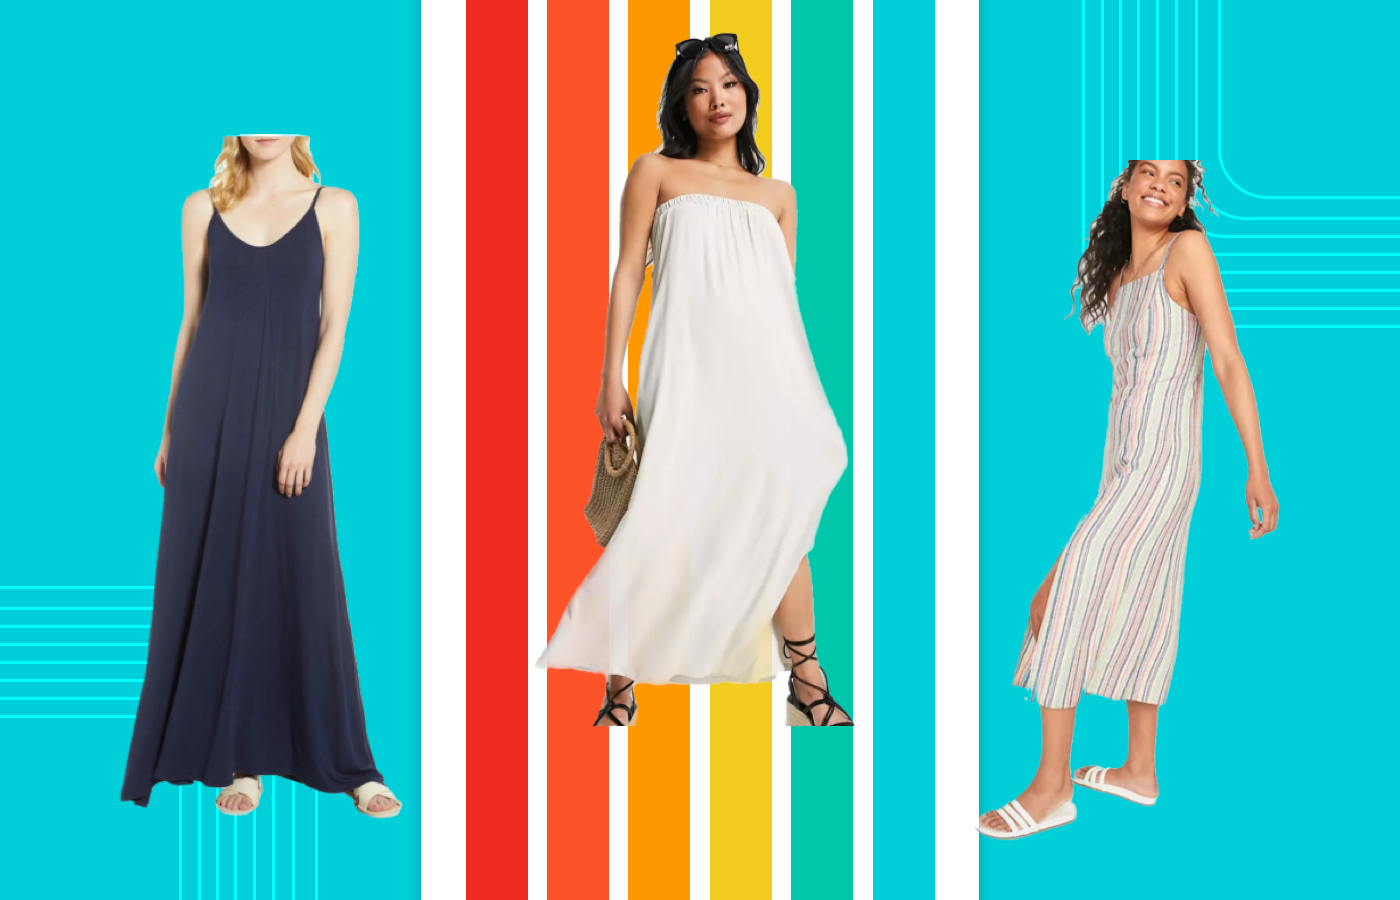 Yes, petite people can wear maxi dresses — here are 6 must-buy styles for the 5'4 and under set